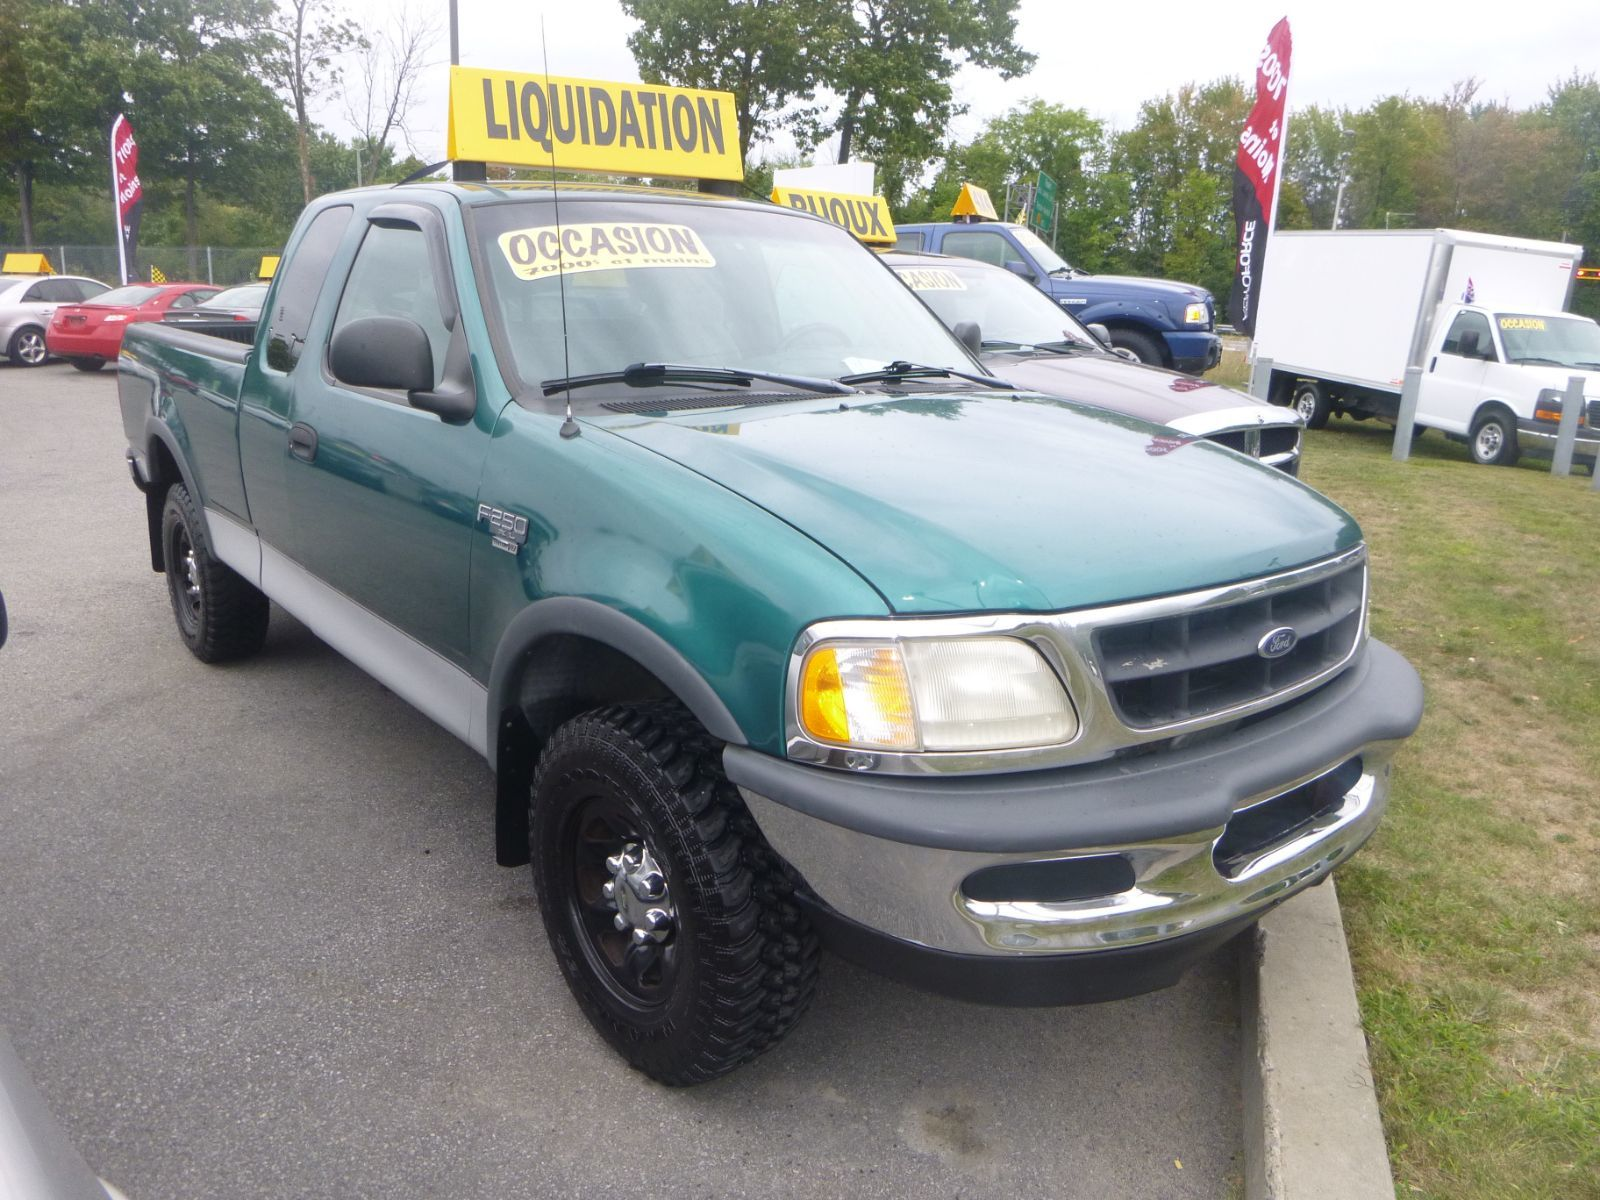 1998 ford f 250 series 4x4 aut king cab belle etat wow used for sale in pincourt ile perrot mazda 2 20